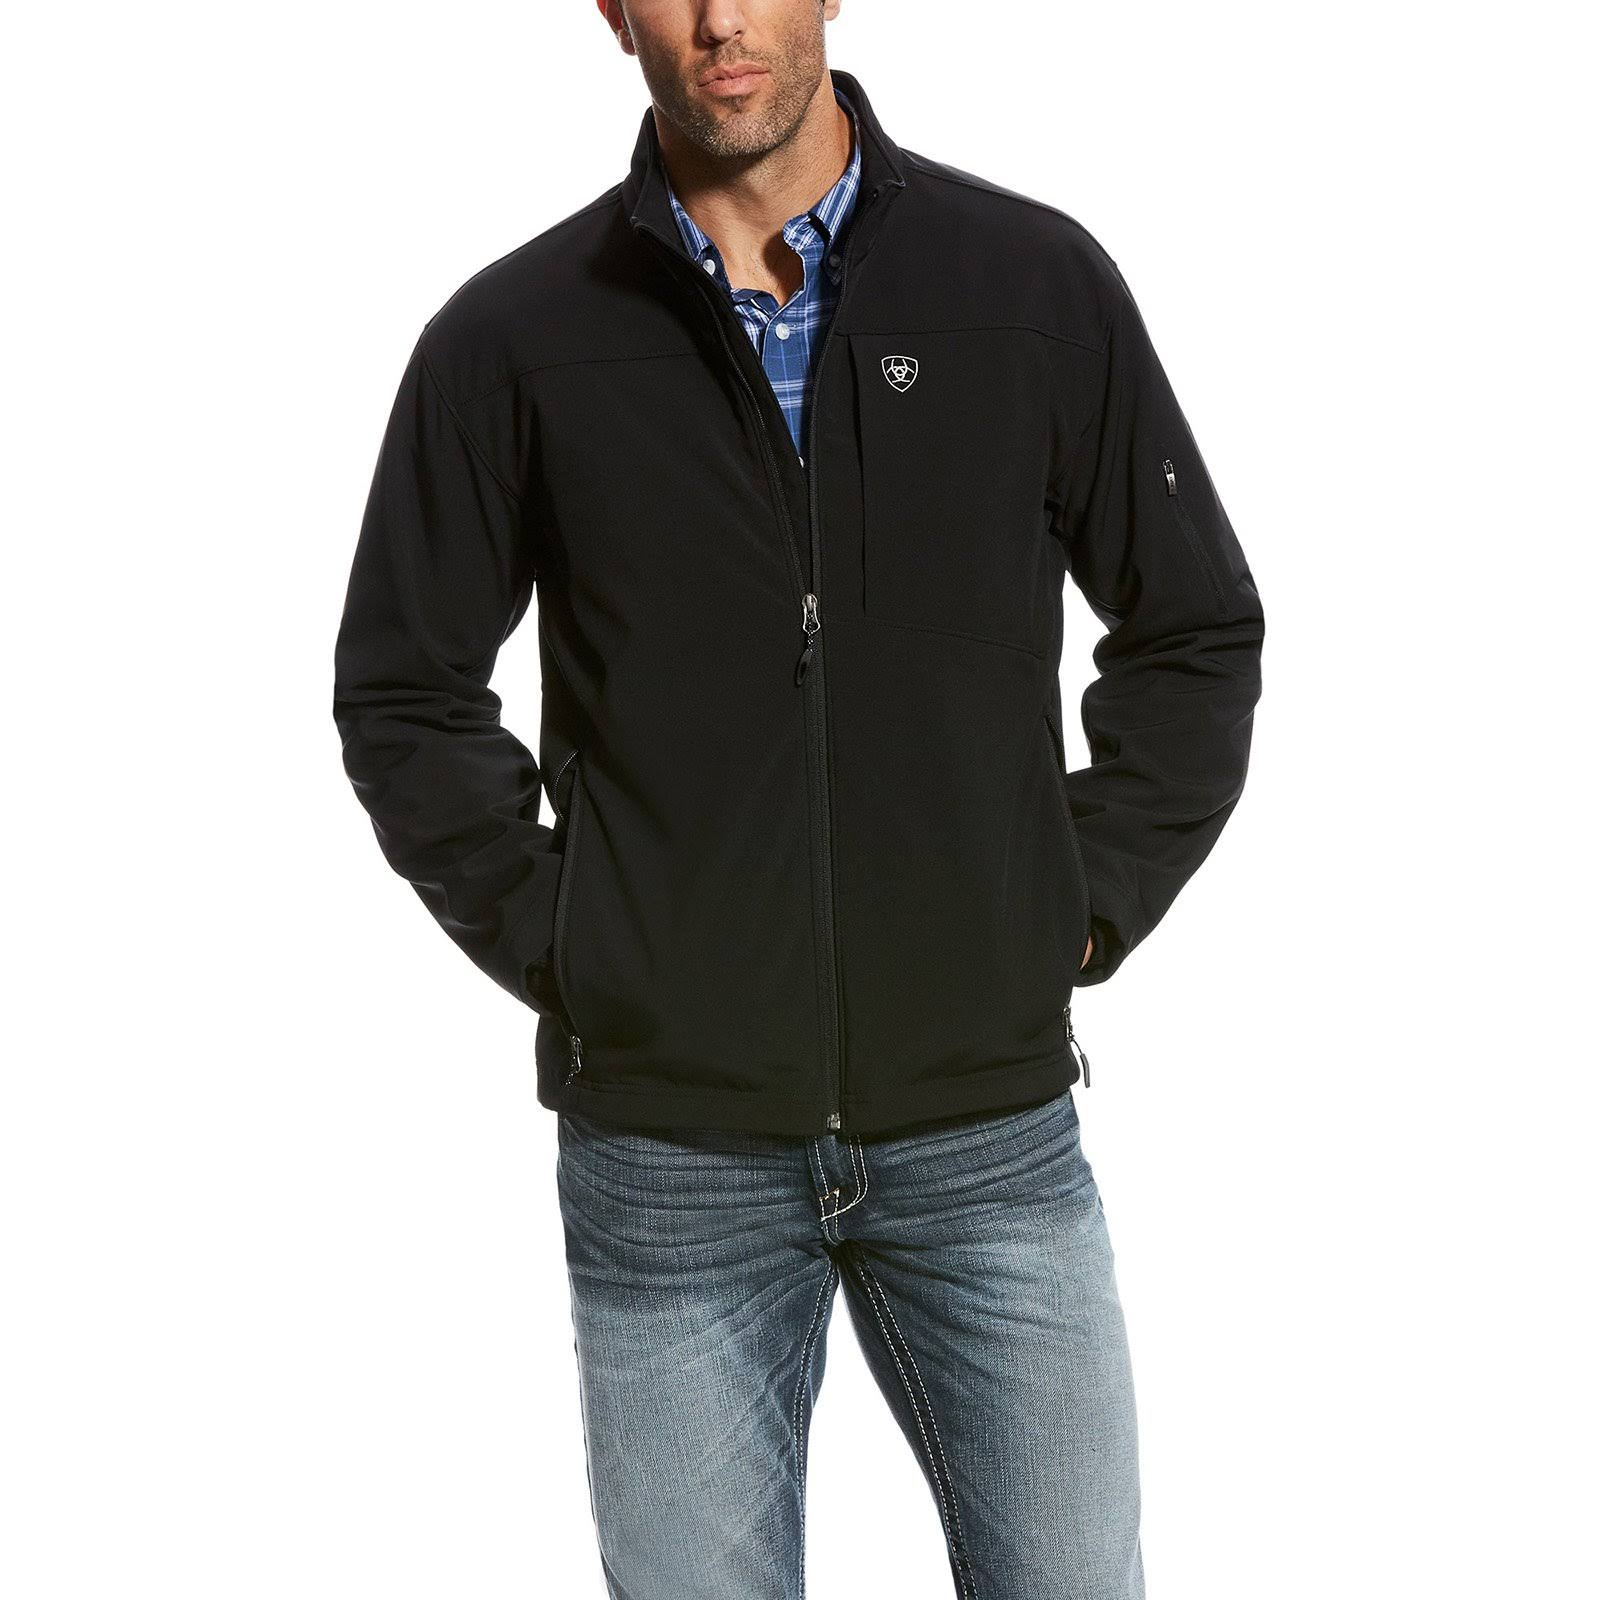 Ariat Men's Vernon 2.0 Black Softshell Jacket